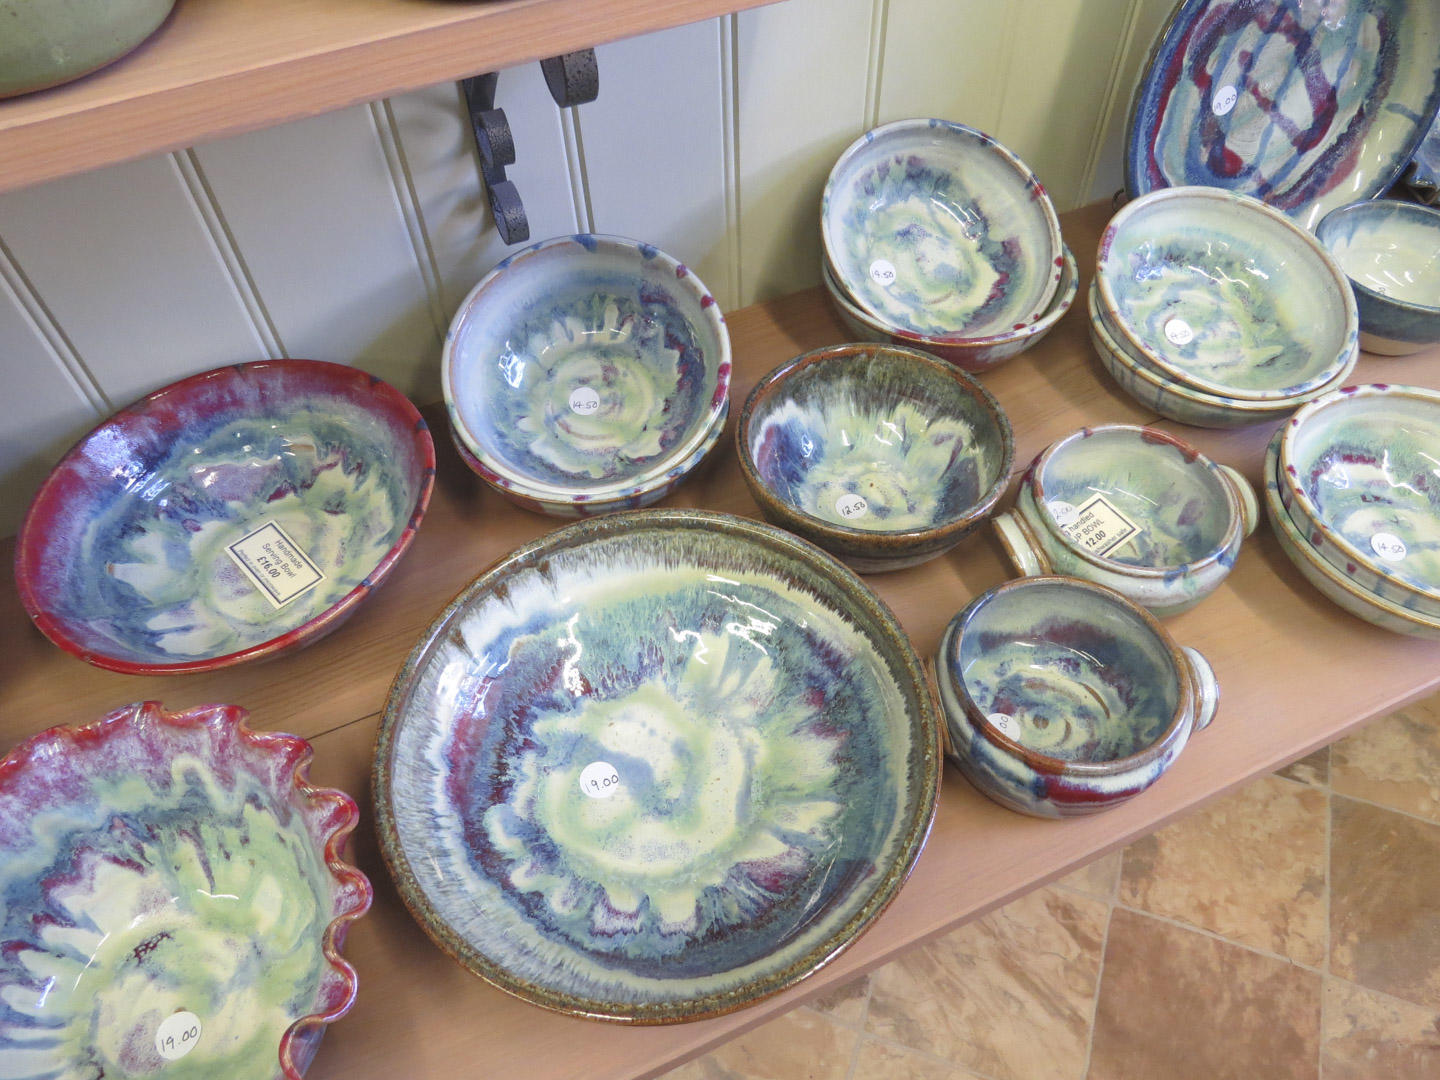 Handmade bowls of different sizes on a shelf.